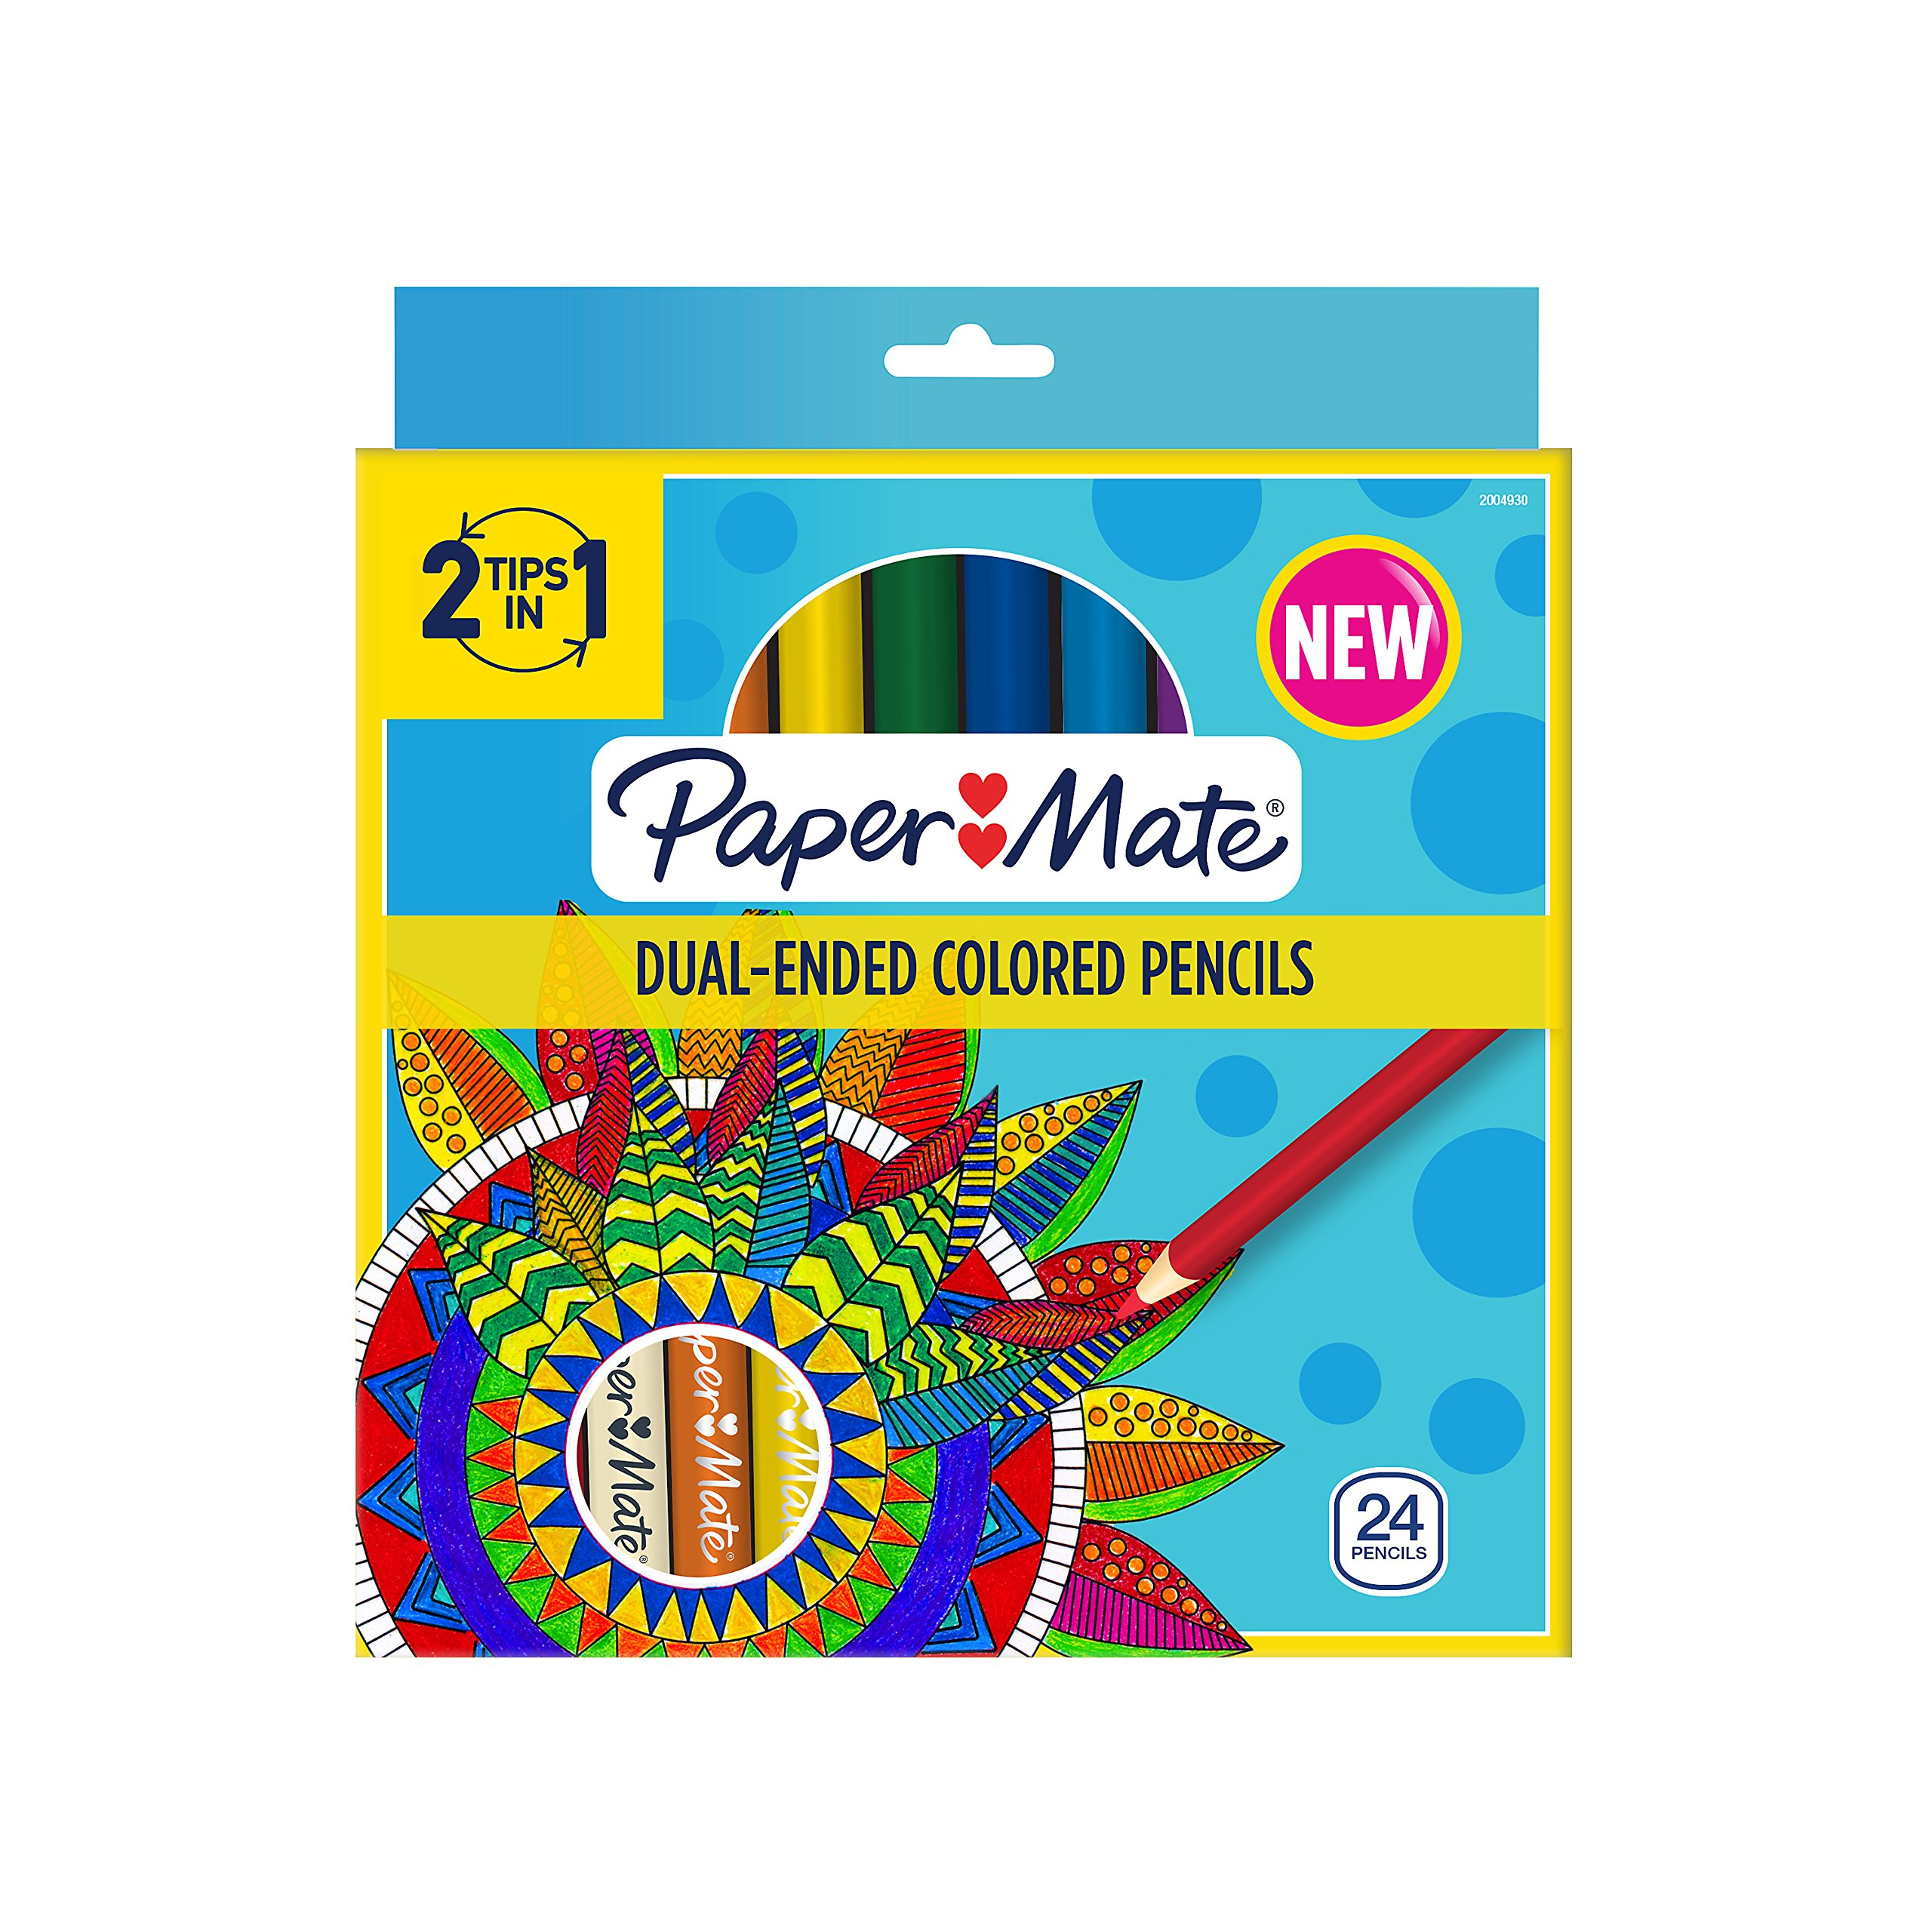 Paper Mate Dual Ended Colored Pencils, Assorted Colors, Pre Sharpened, 24 Count